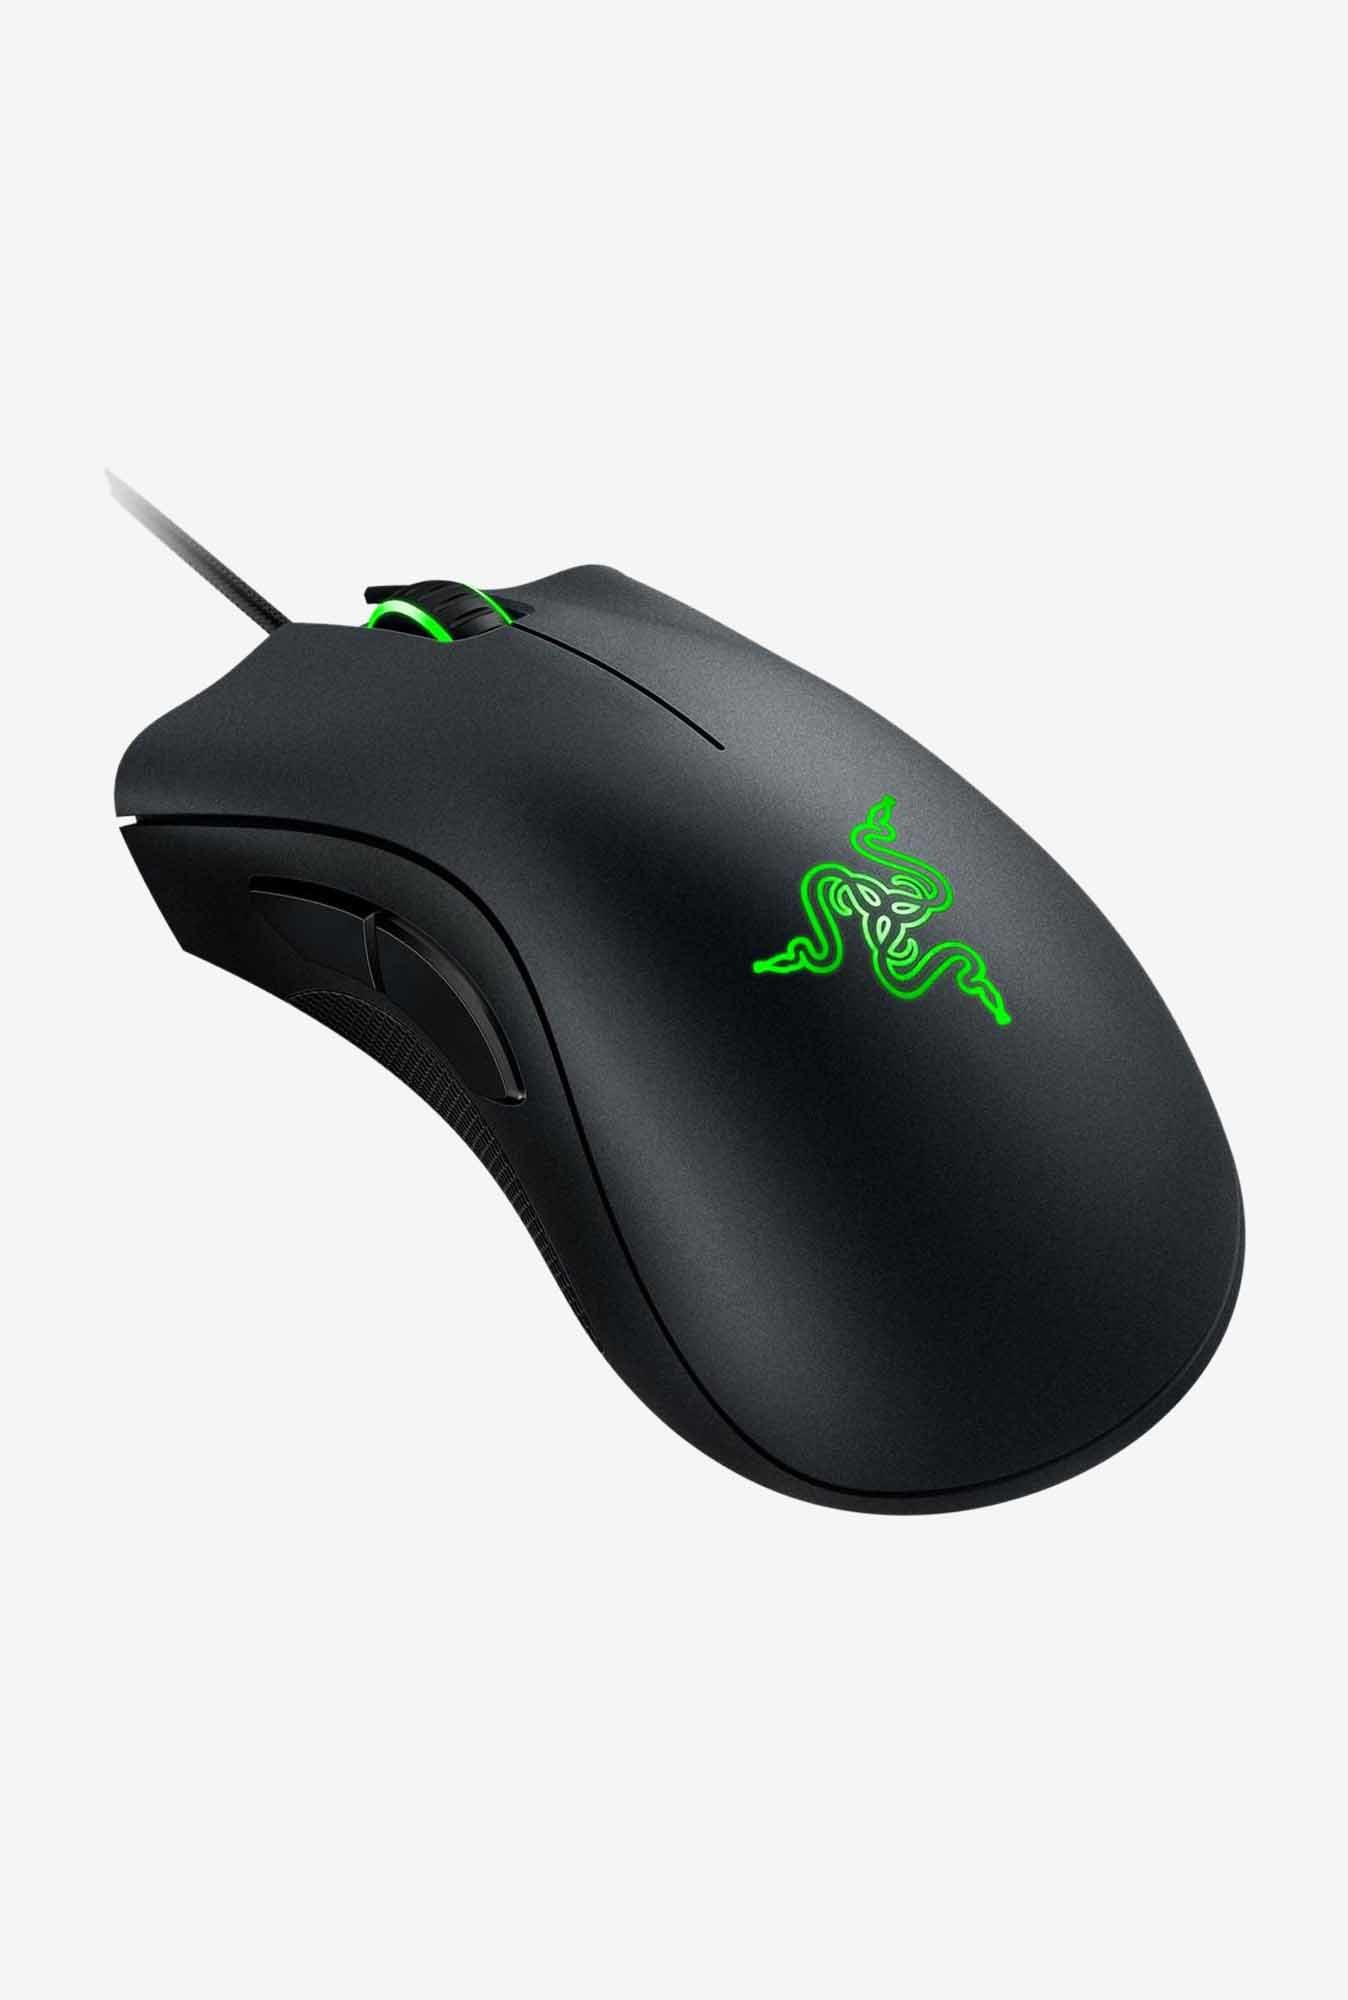 Razer DeathAdder Chroma RZ01-01210100-R3A1 Mice Black & Green